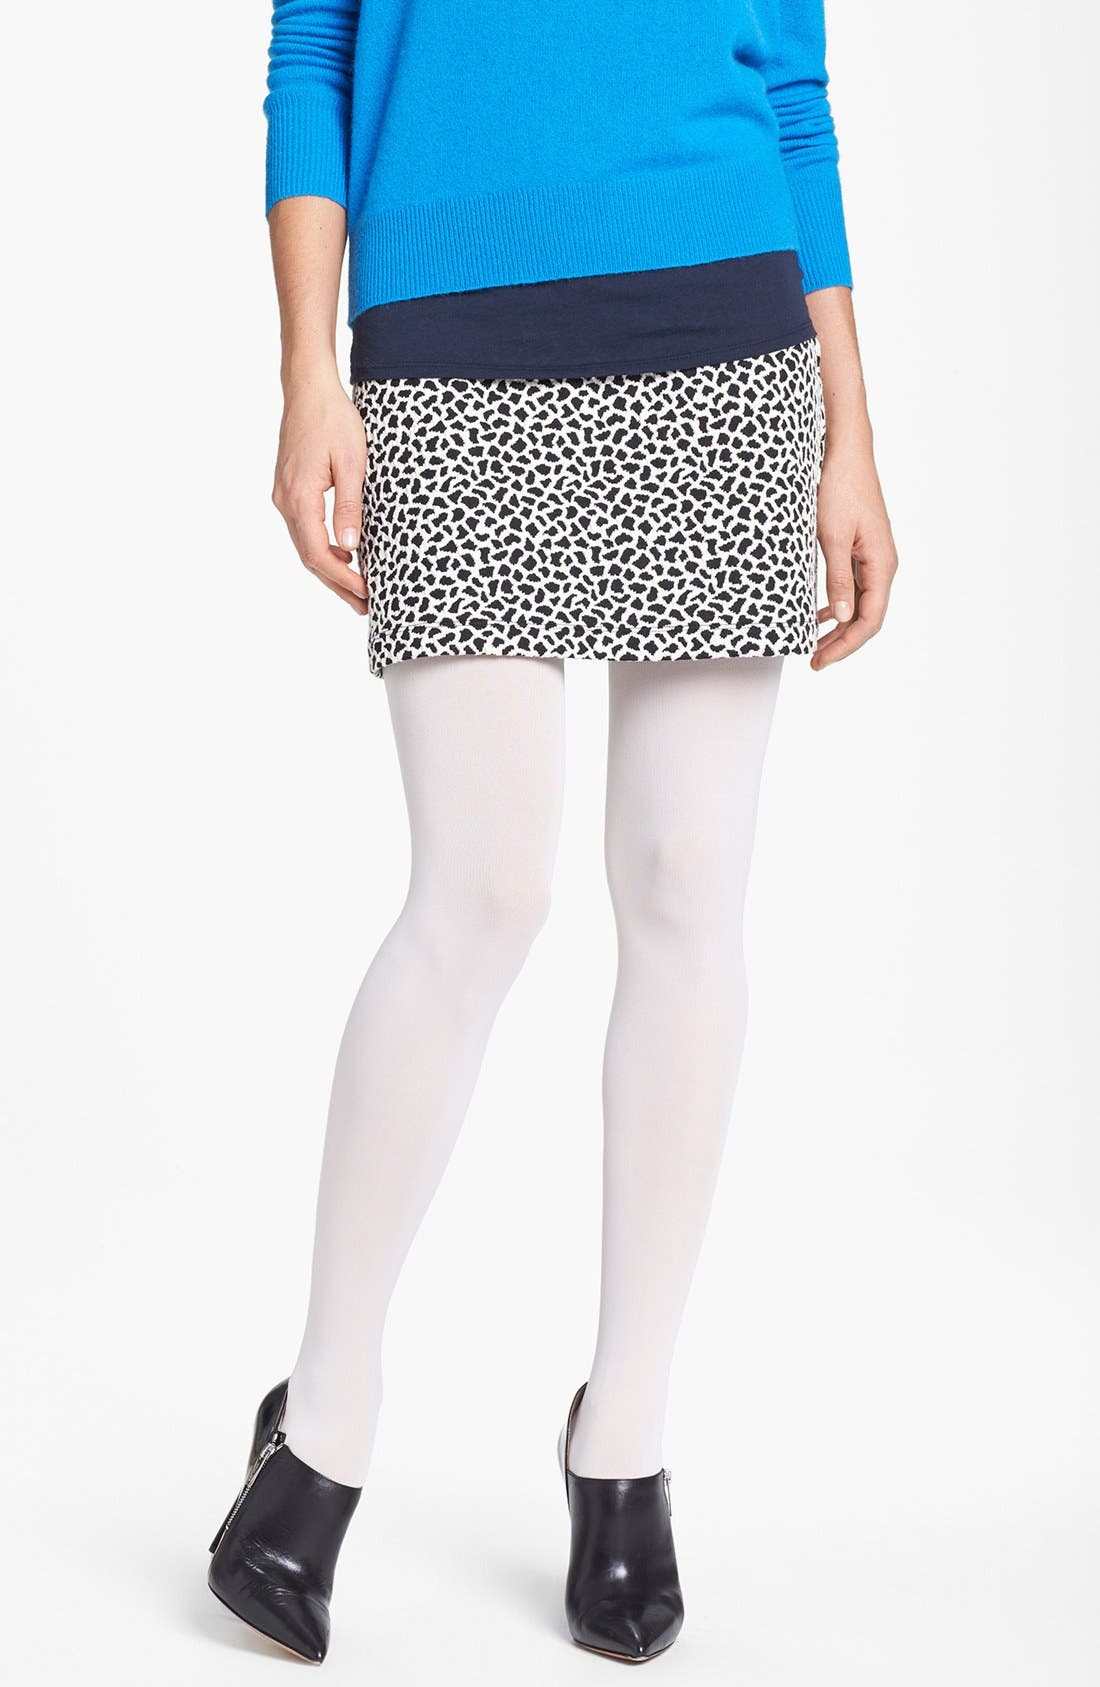 'Everyday' Opaque Tights,                             Main thumbnail 8, color,